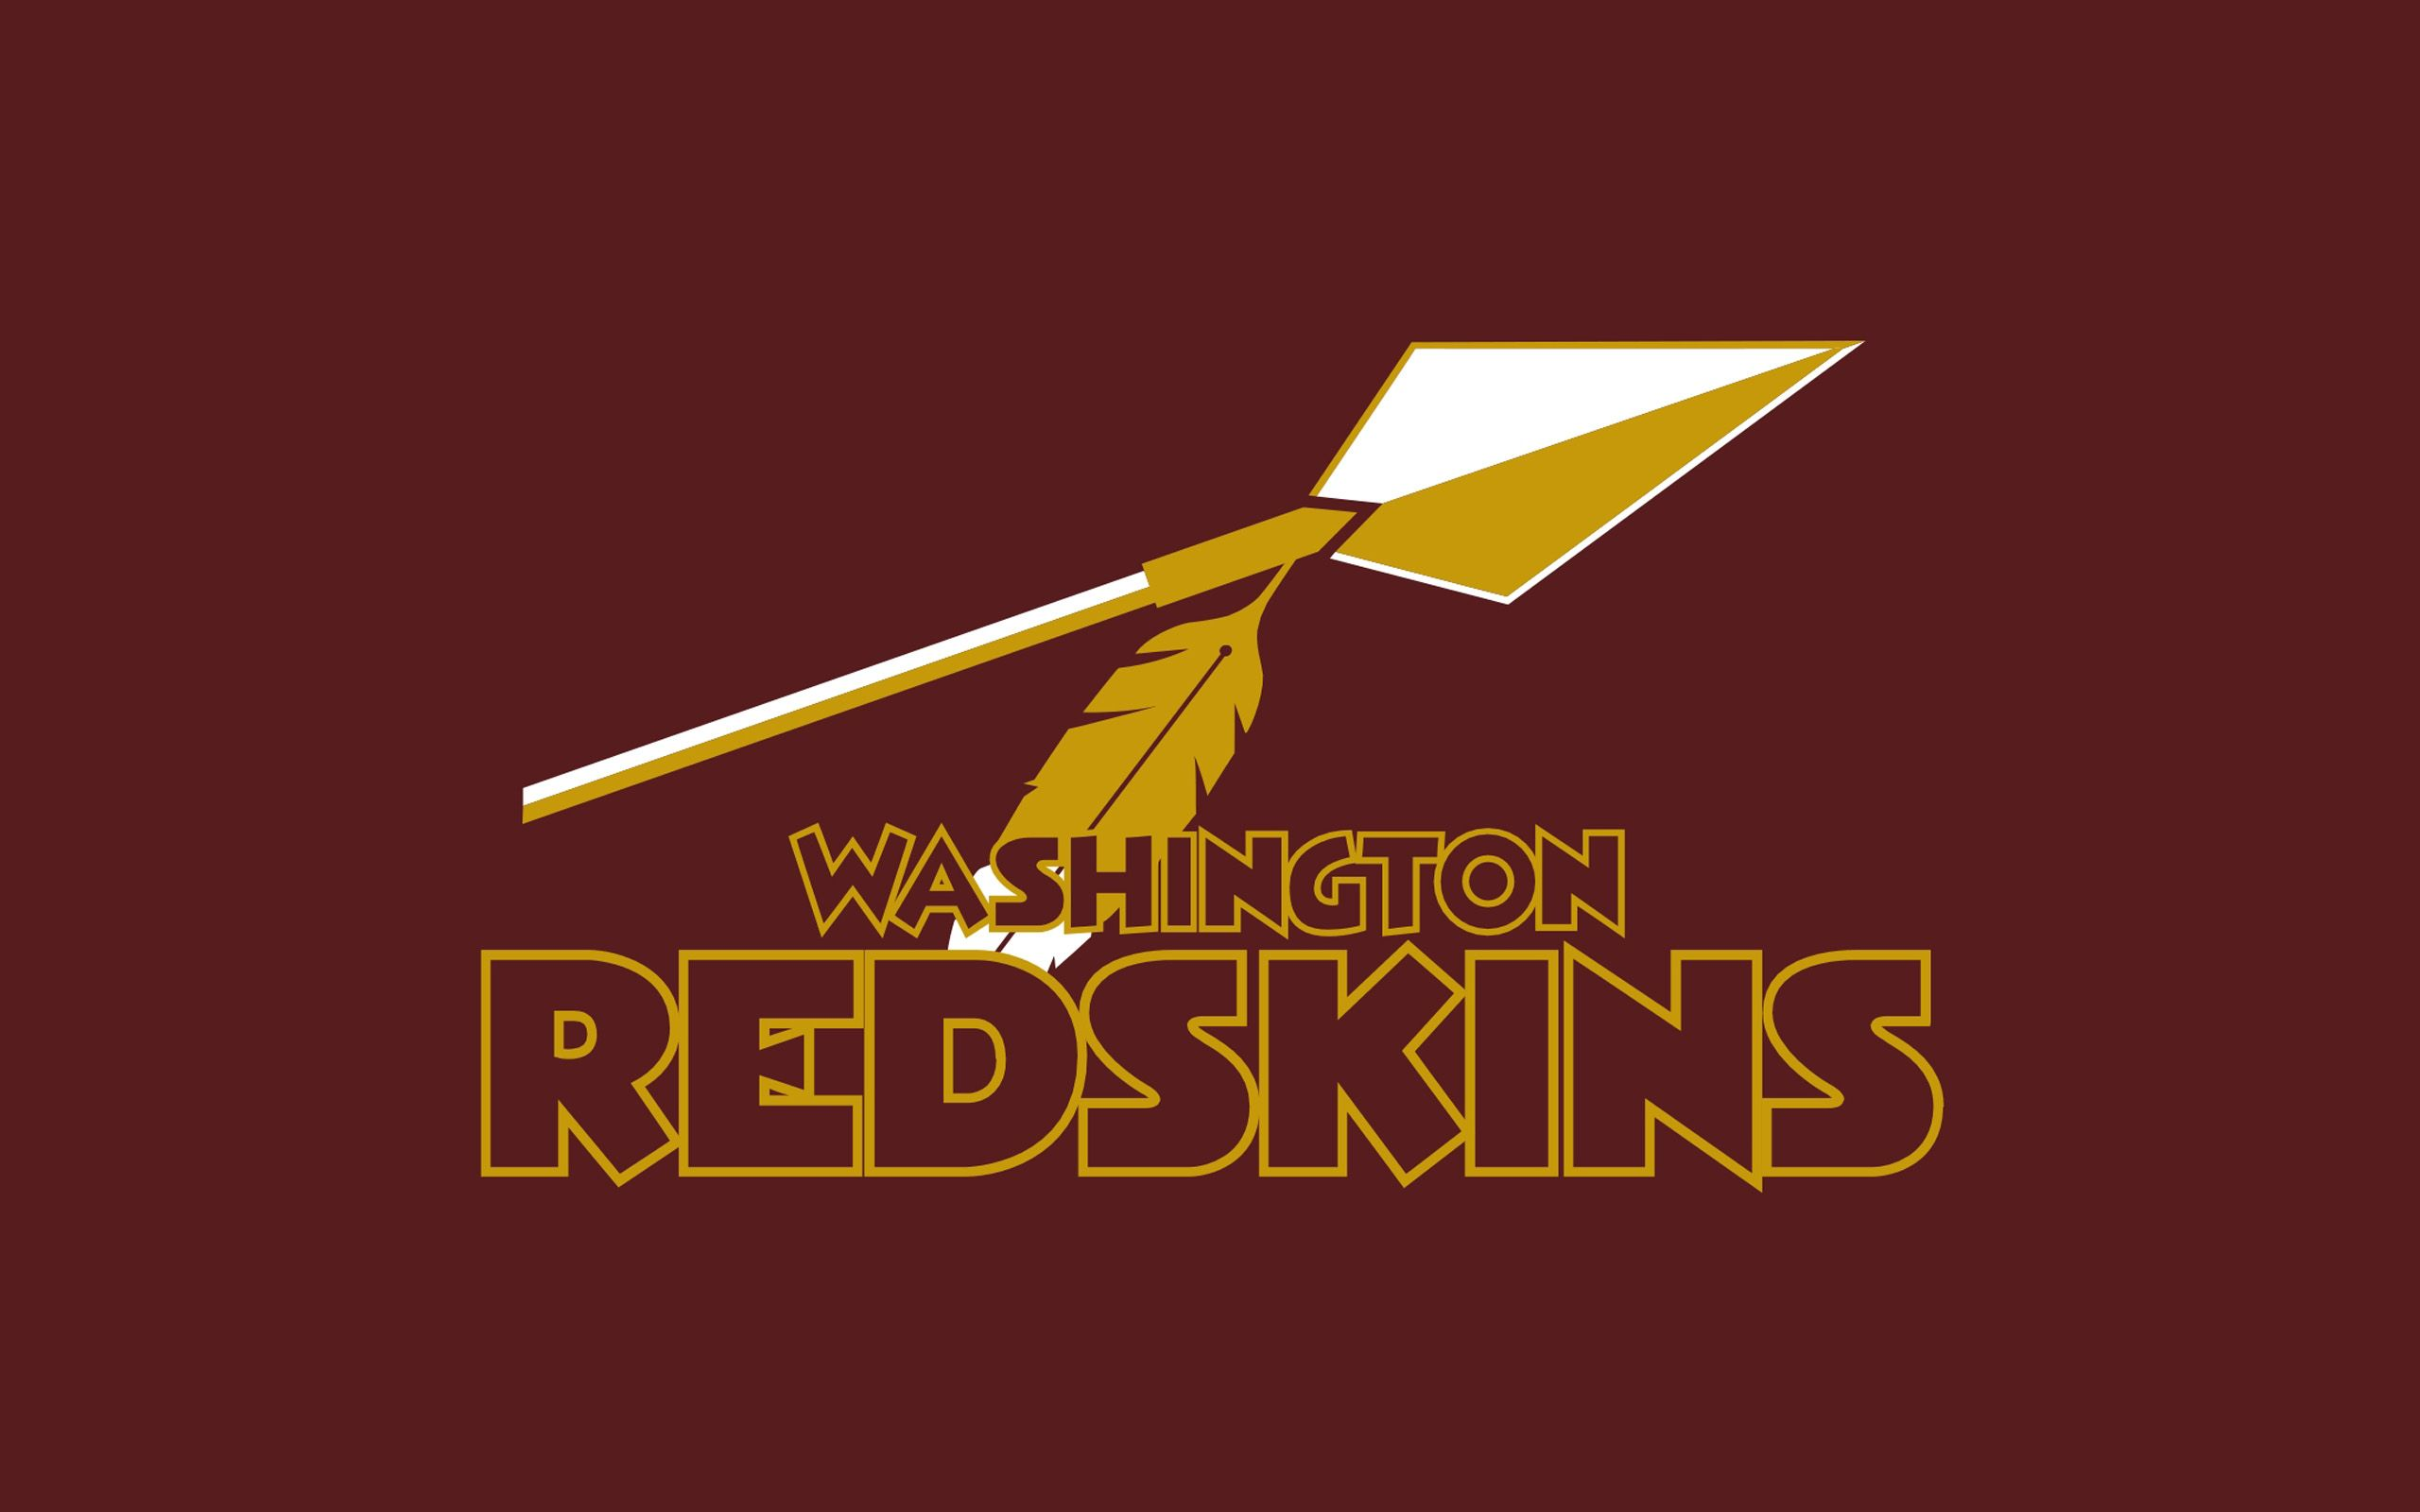 Redskins Wallpapers 2015 2560x1600